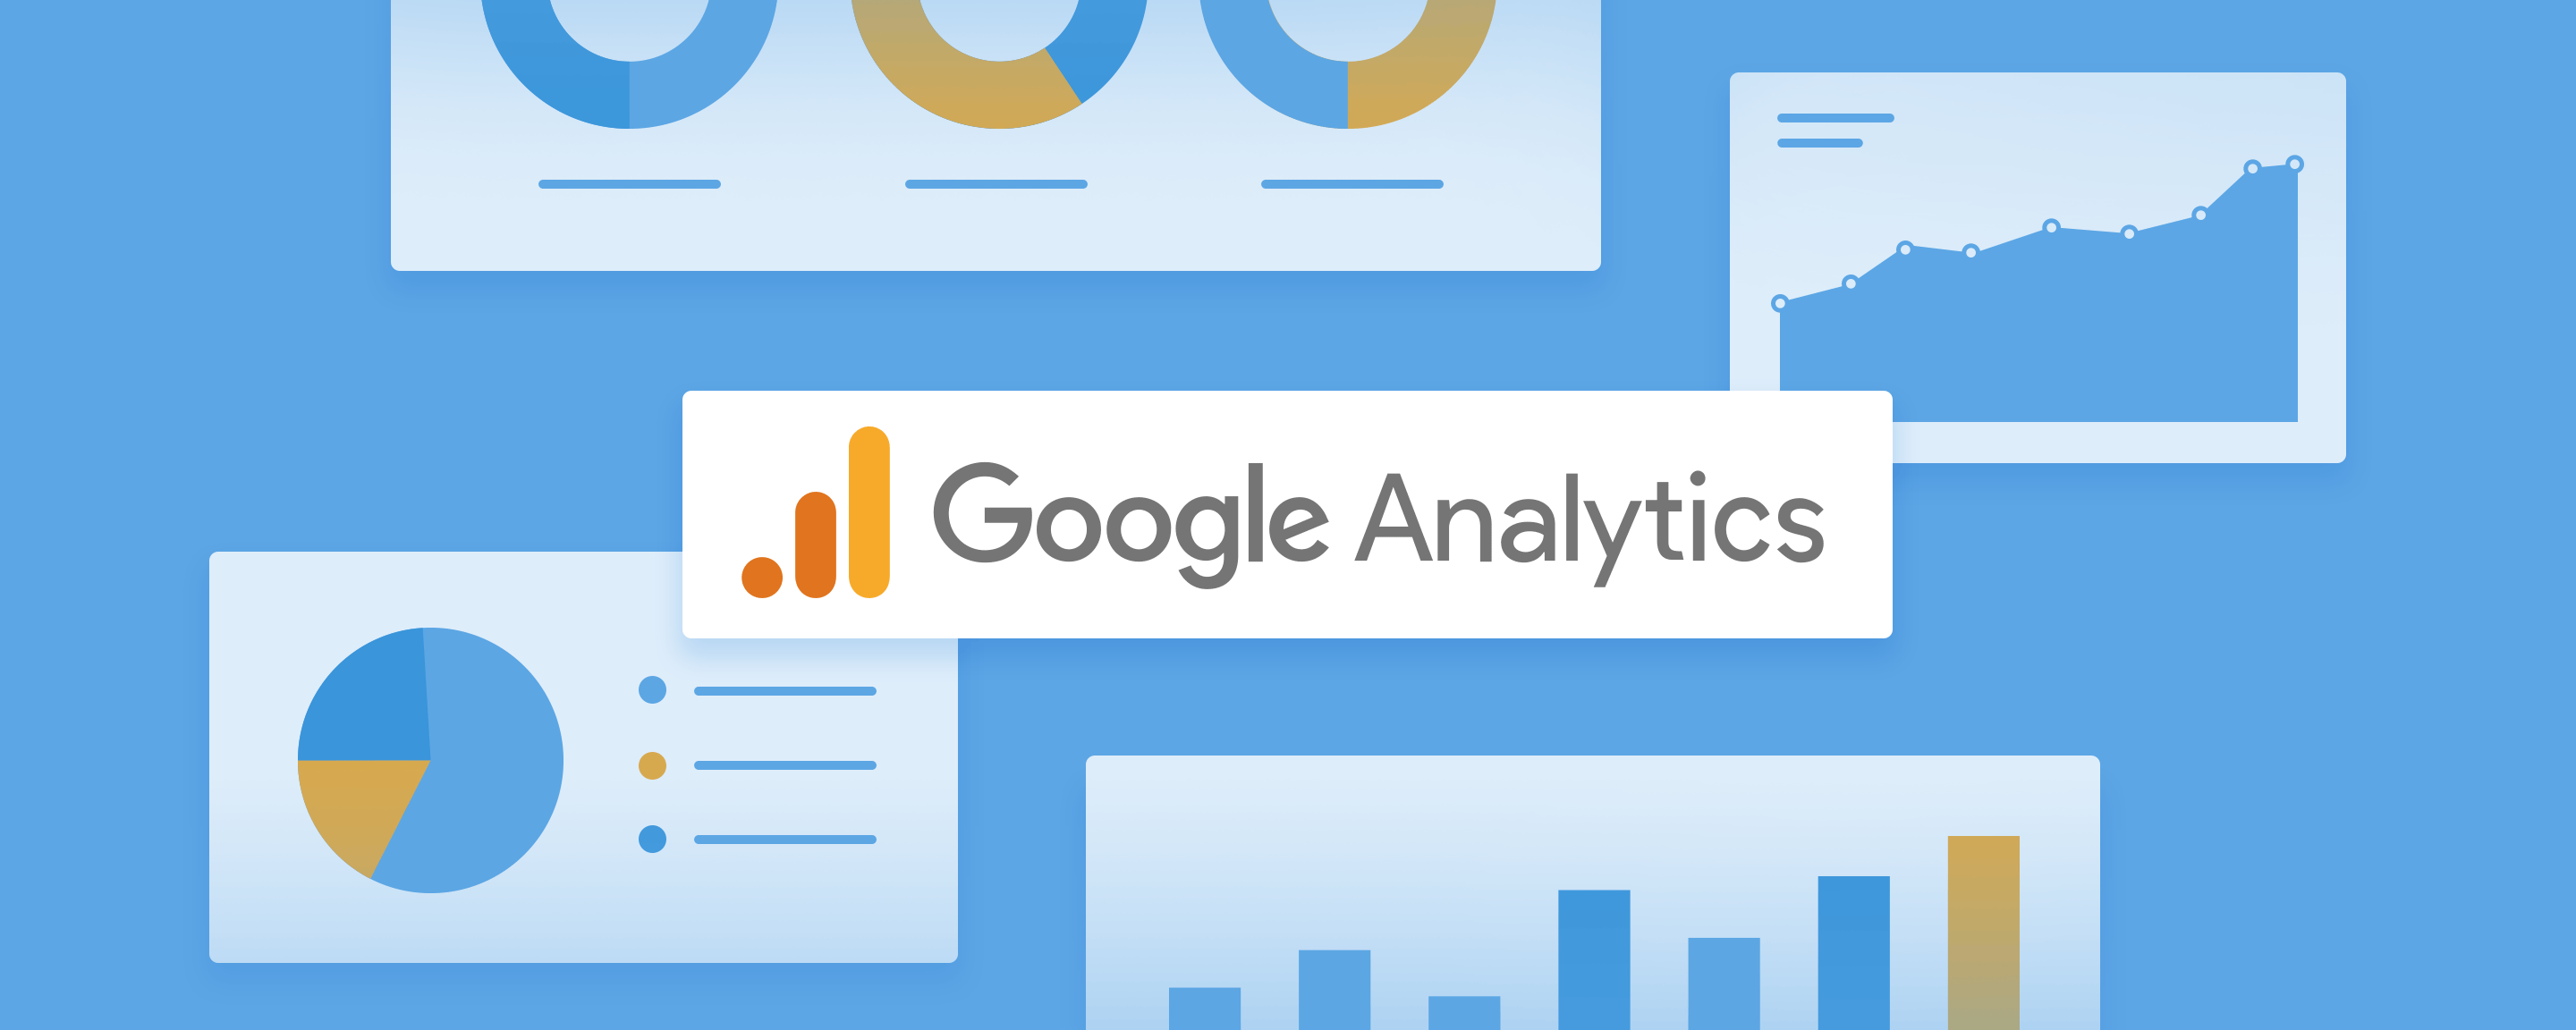 Google Analytics Guide Cover